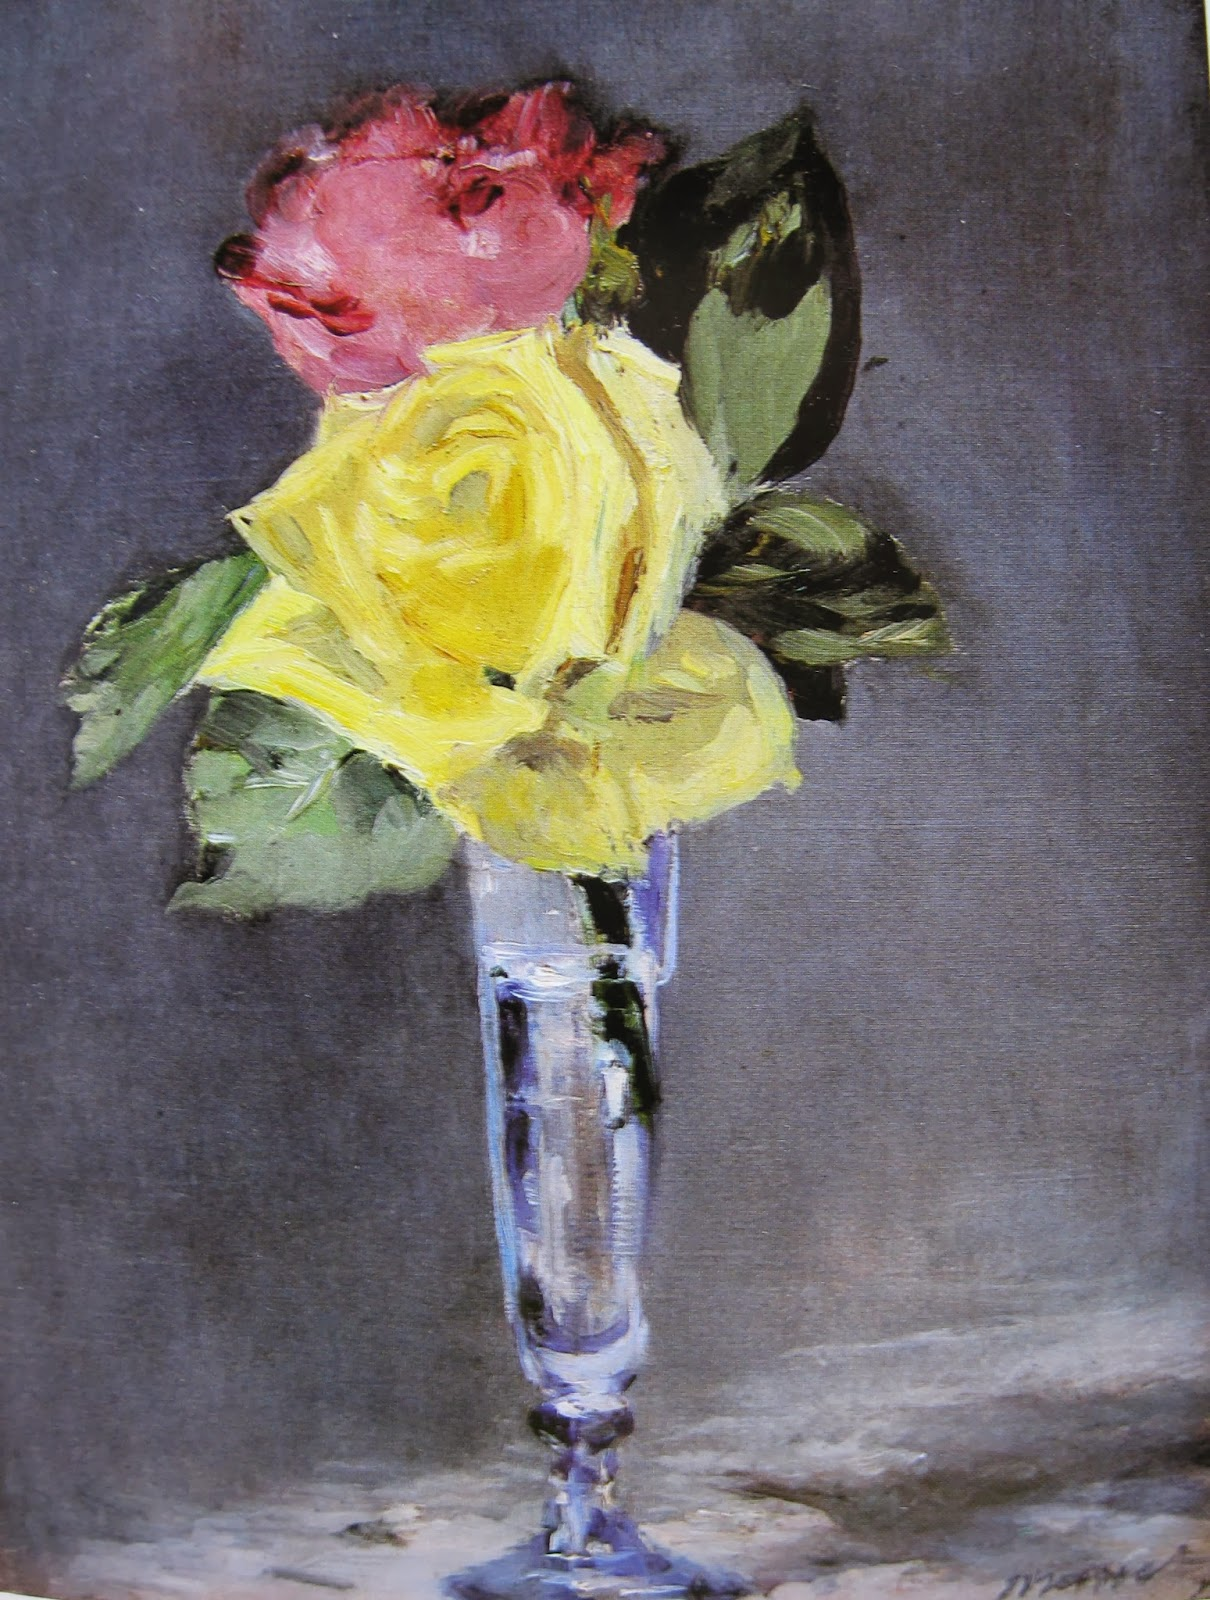 Bouquet of flowers - Edouard Manet - WikiArt.org ... |Manet Flowers